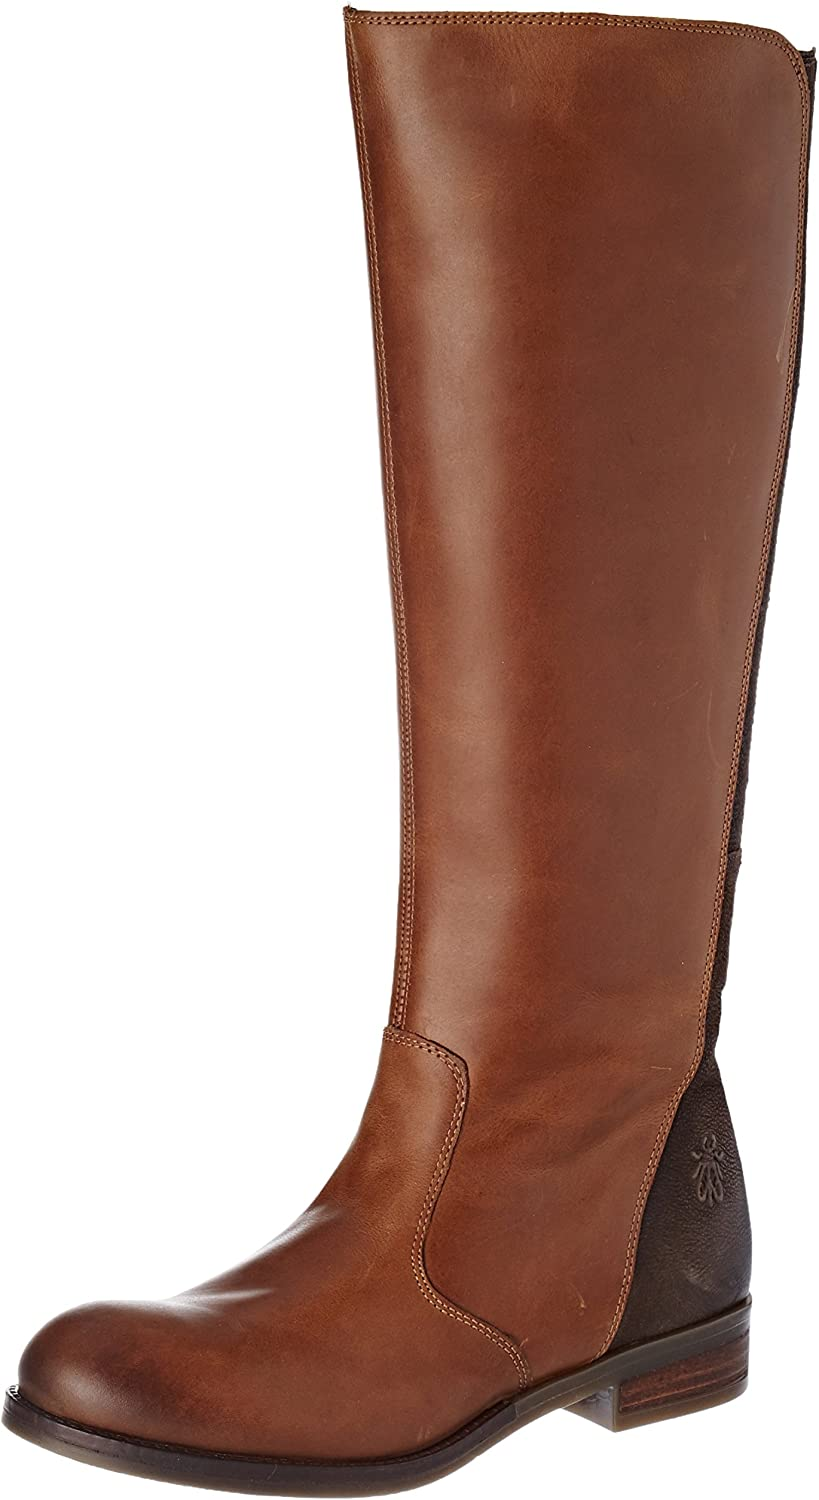 FLY London Womens Axil078fly Equestrian Boot